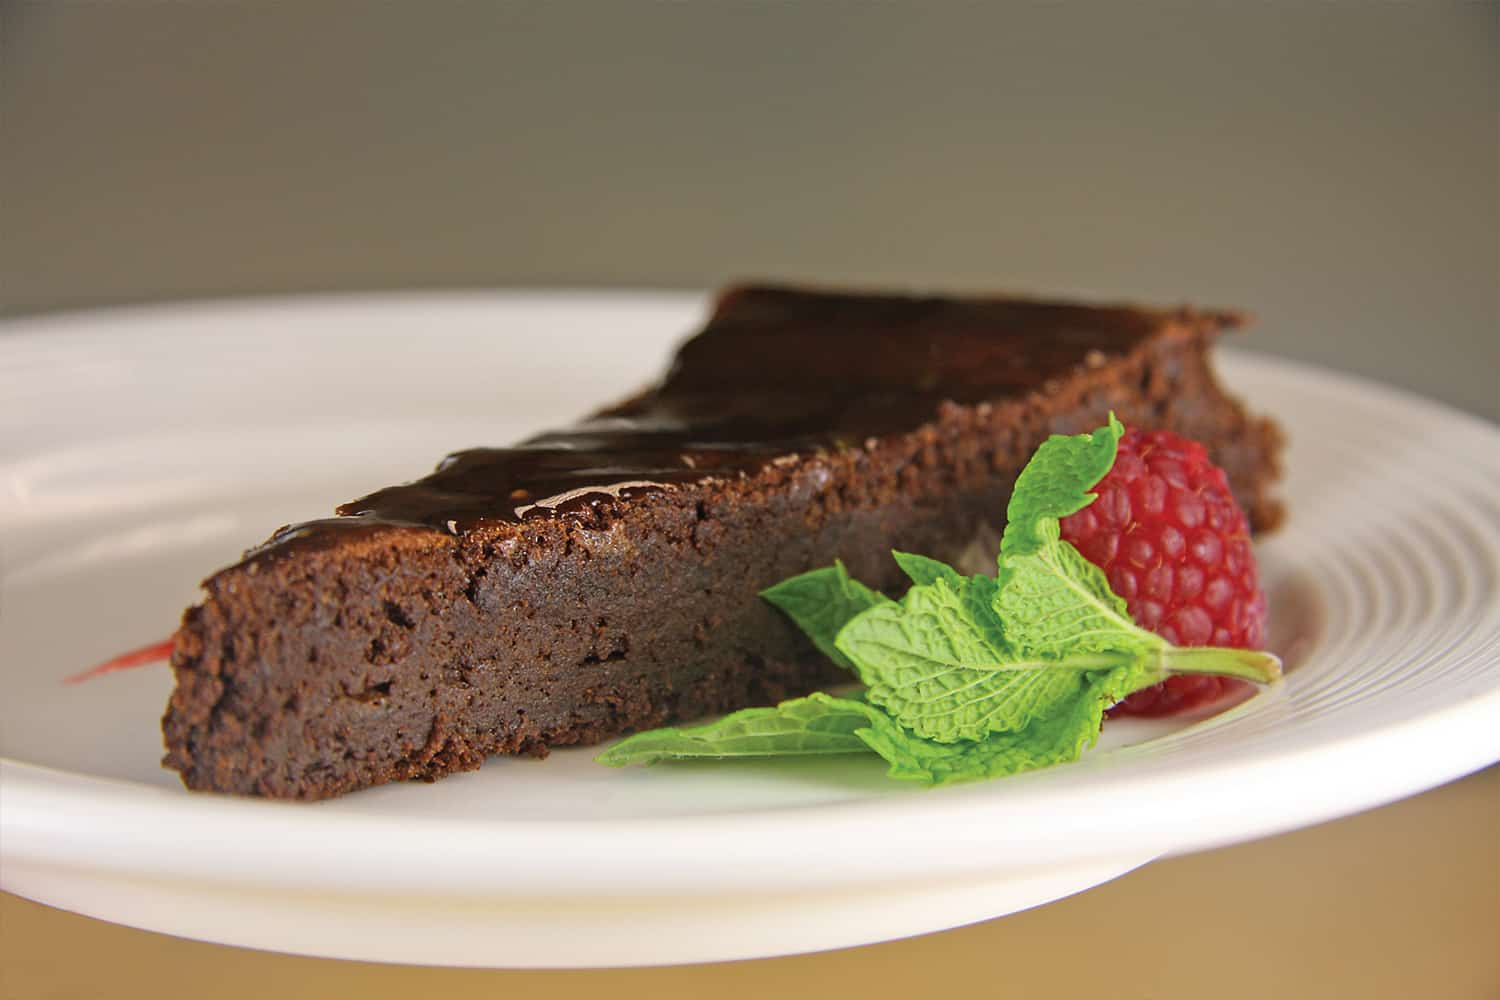 Chocolate Torte, Healthcare Food Service Menu Options